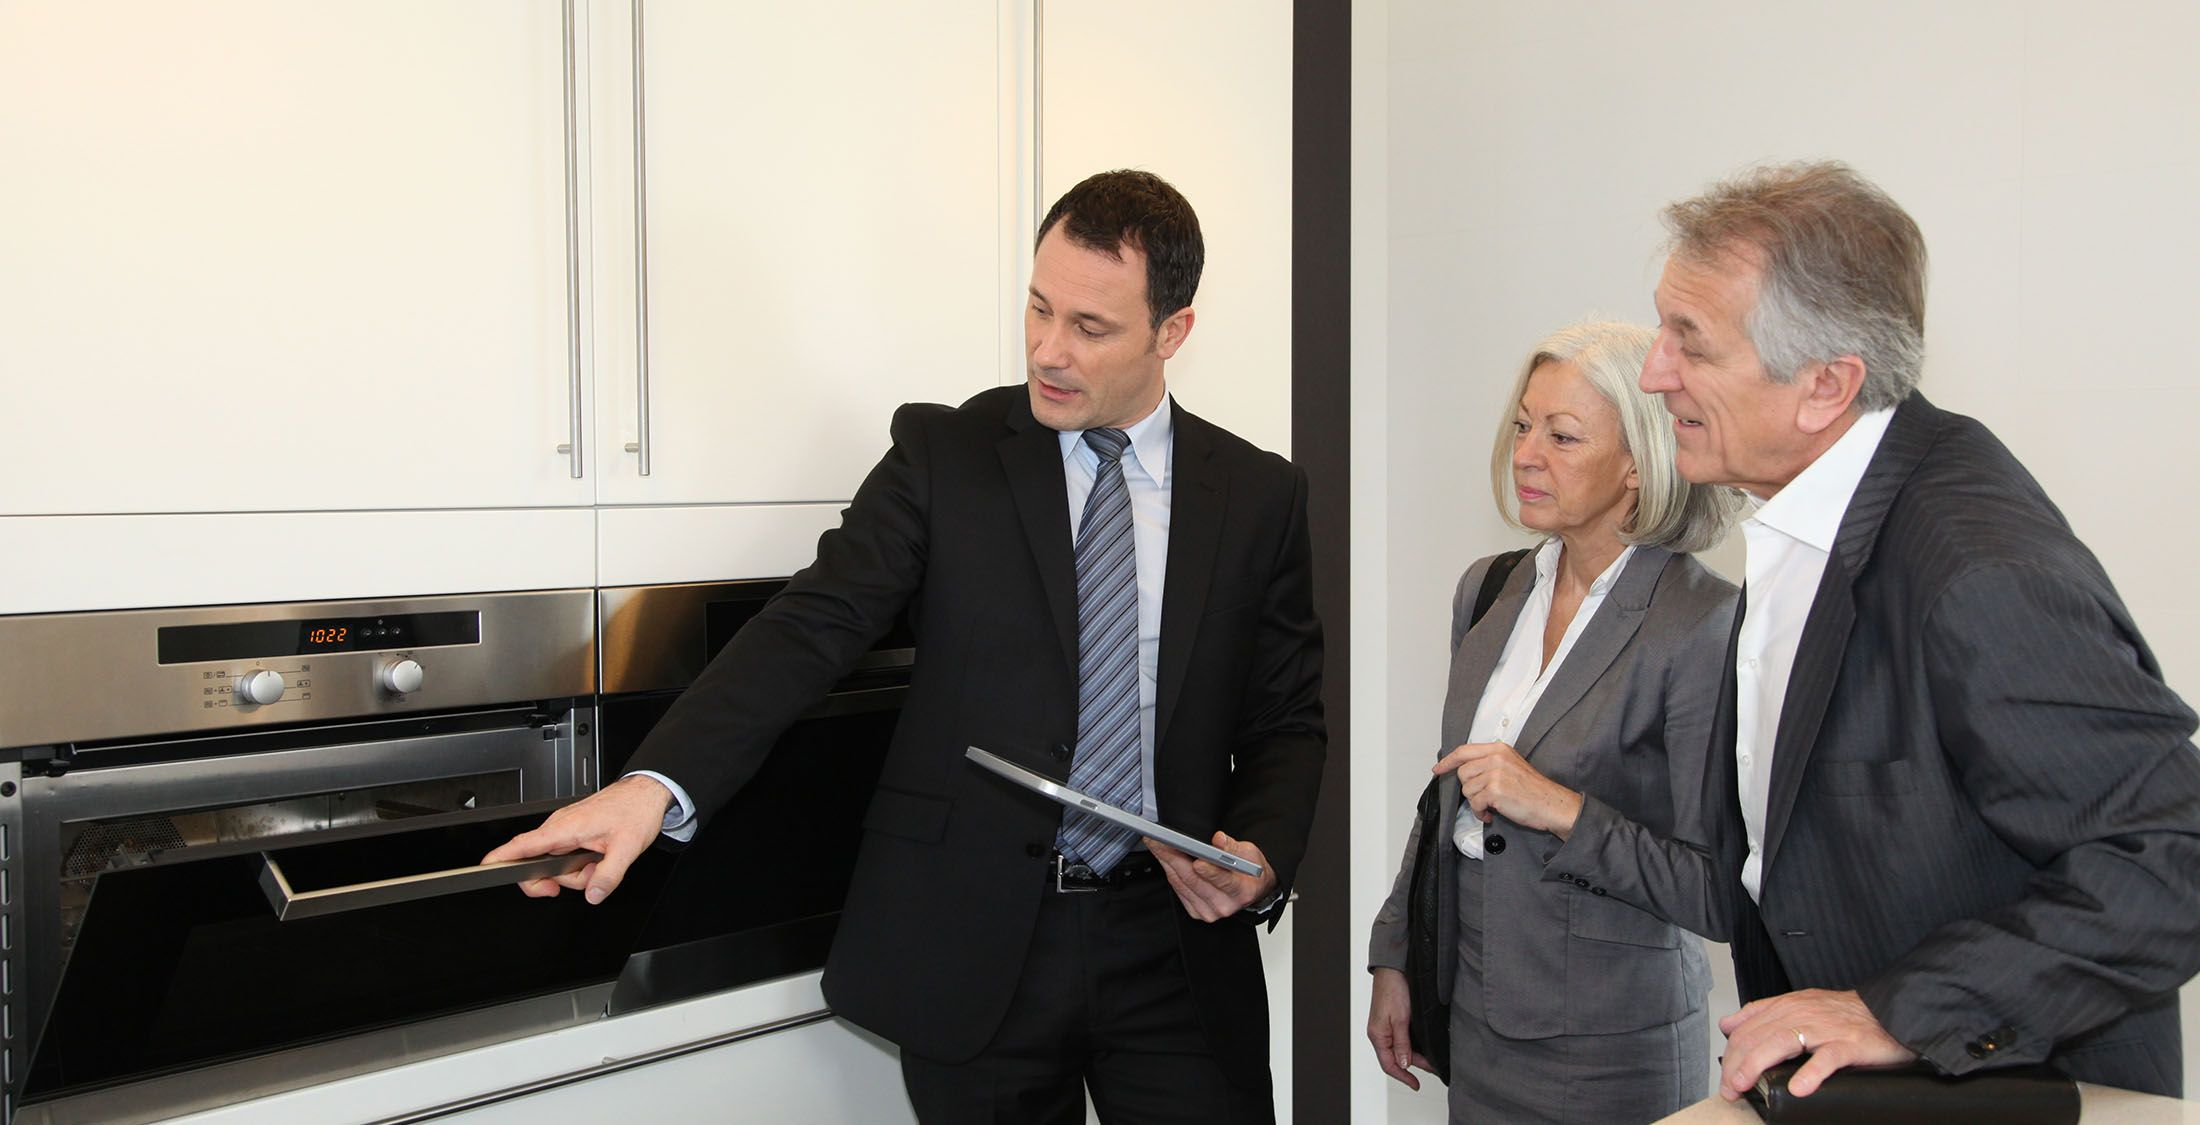 real estate agent showing elder couple an oven